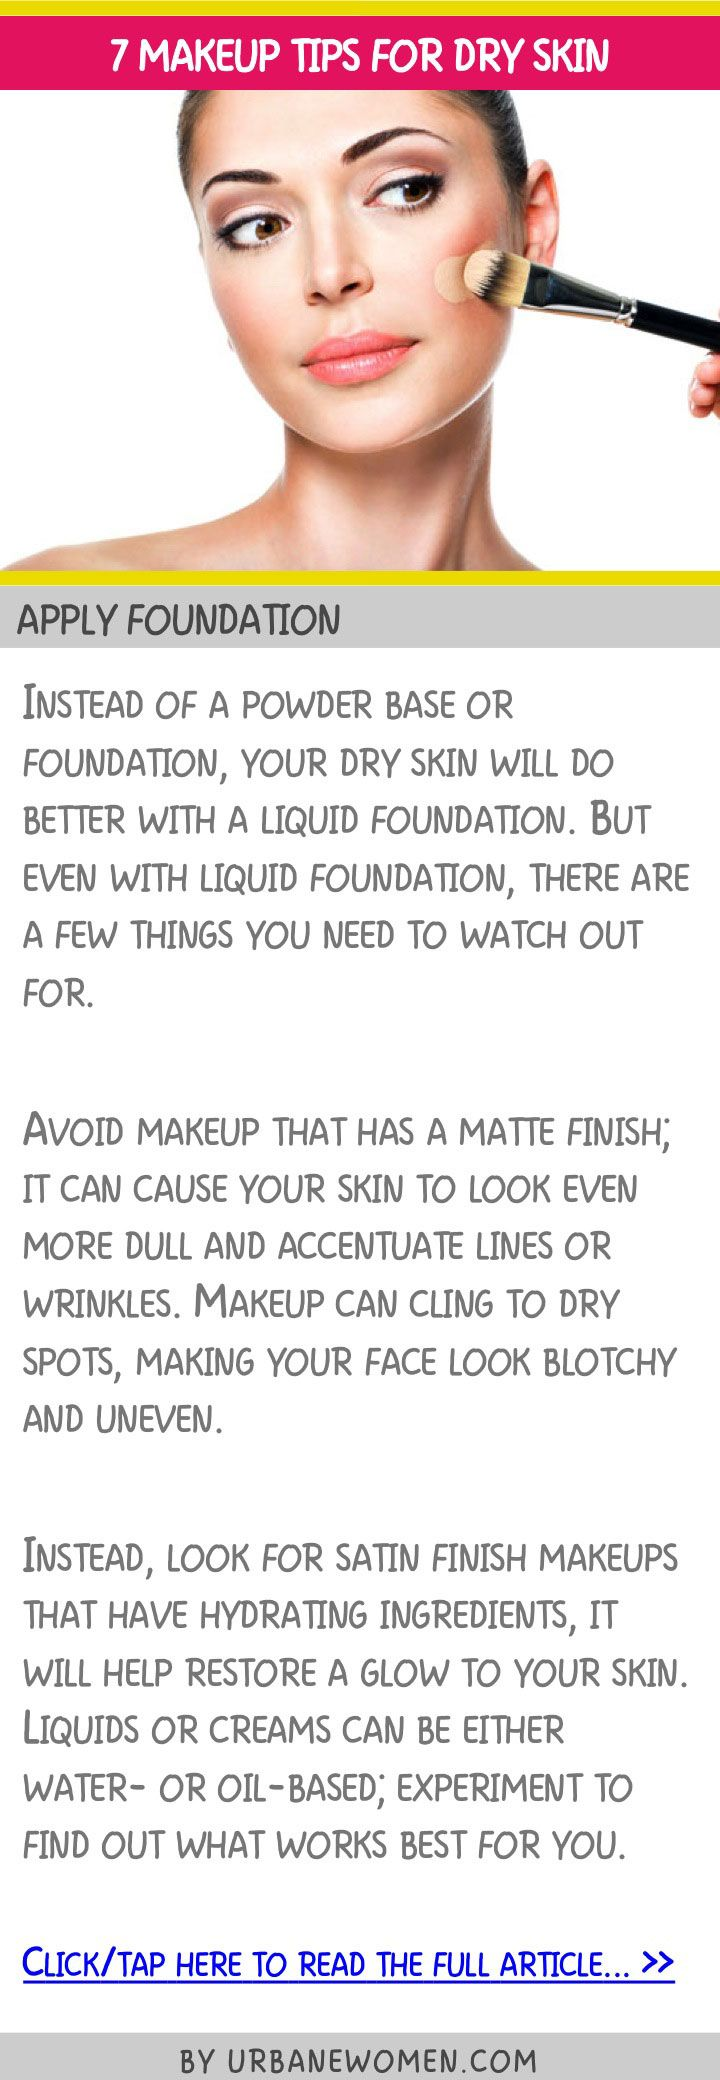 7 makeup tips for dry skin - Apply foundation